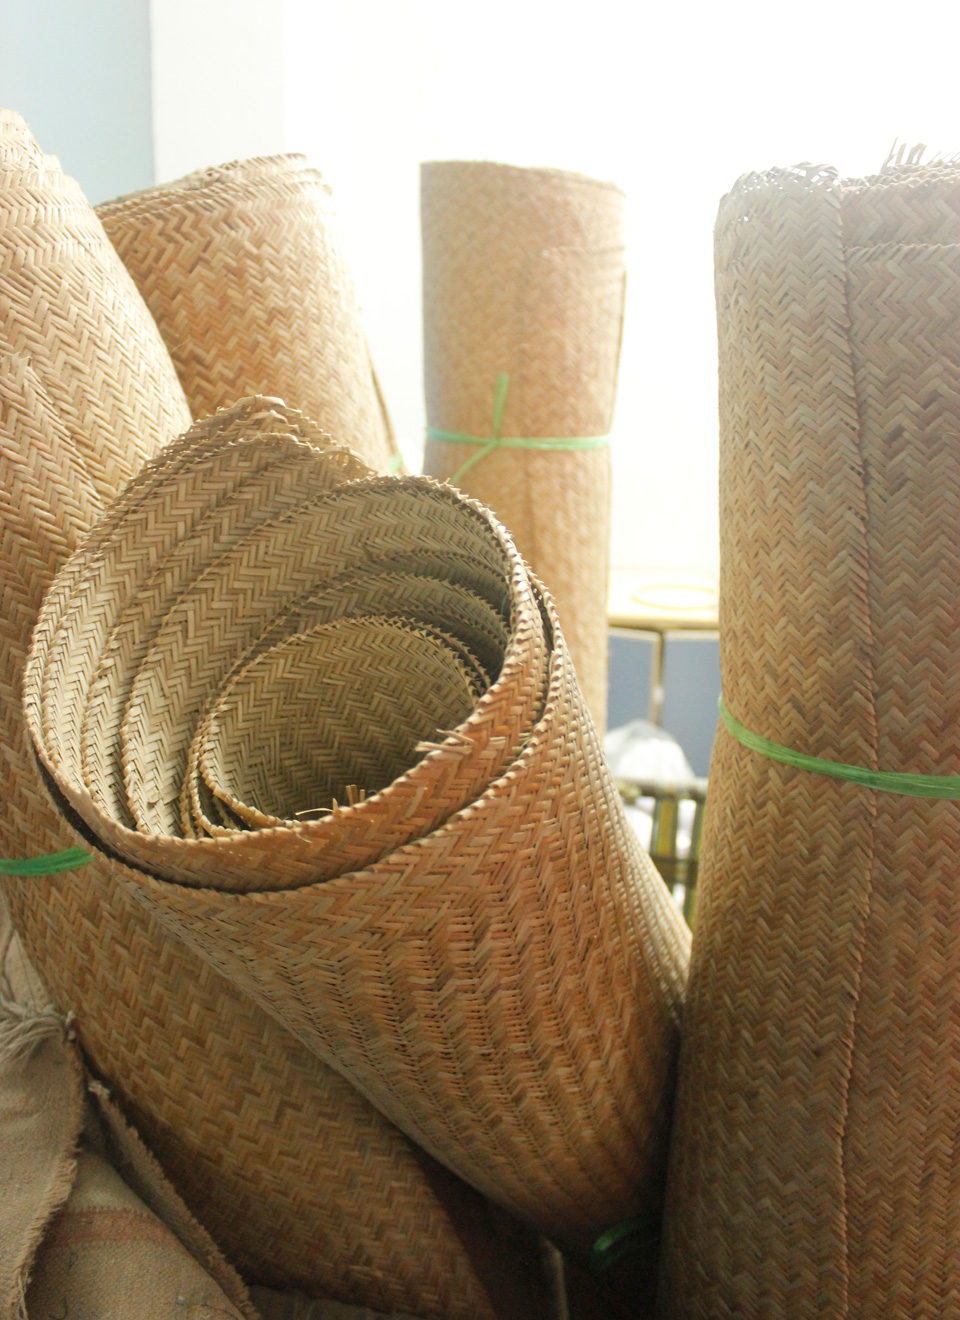 bamboo strips woven into lengths, used as the base fabric for handbags.